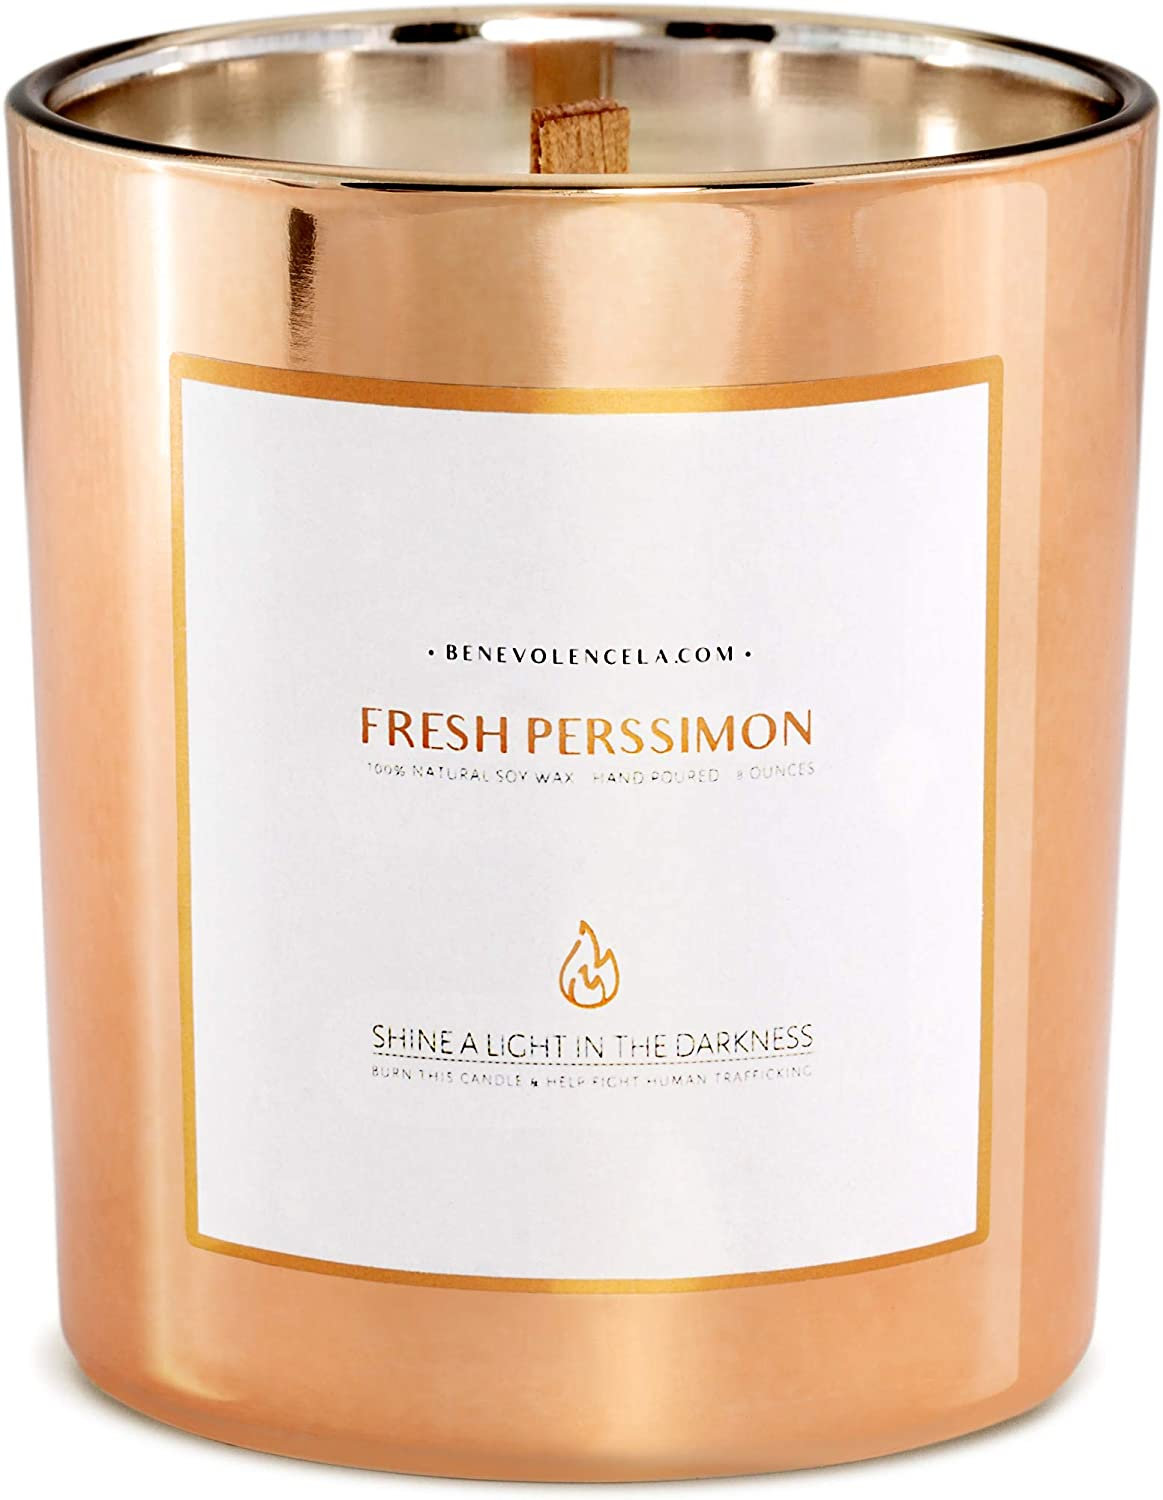 Benevolence LA Scented Candles Soy Candles - Aromatherapy Candles Relaxing Candles Rose Gold Glass Decorative Candle Perfect Scented Candles for Home Decor and Stress Relief (Fresh Persimmon)